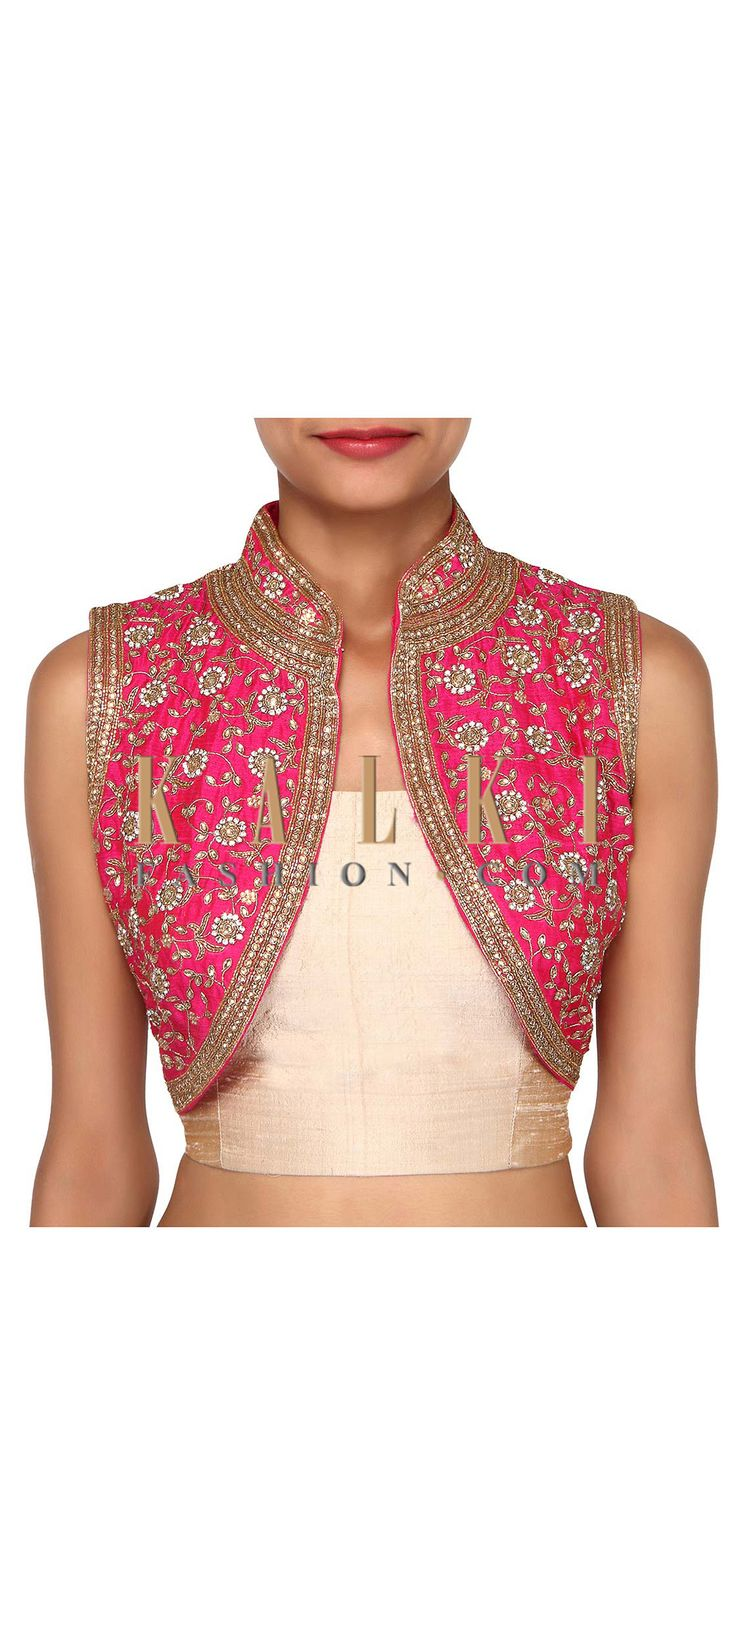 Buy Online from the link below. We ship worldwide (Free Shipping over US$100). Product SKU - 275647. Product Link - http://www.kalkifashion.com/pink-shrug-features-with-kundan-embroidery-only-on-kalki.html